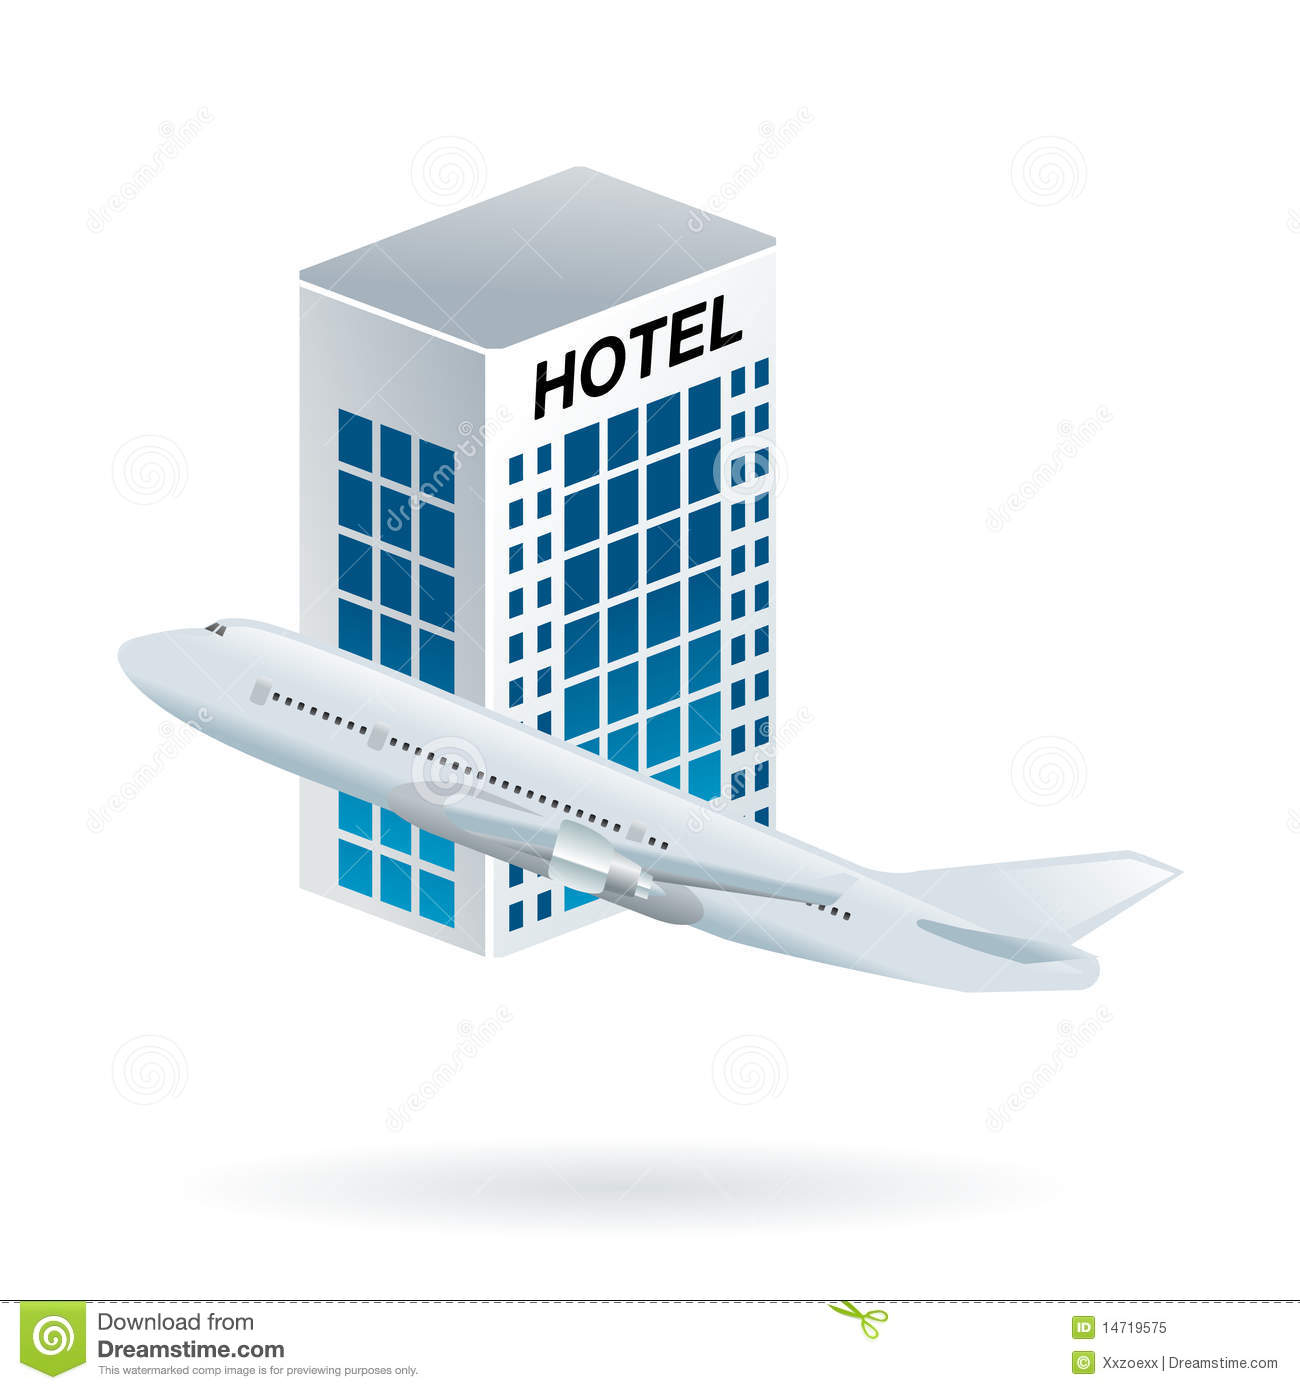 Get verifiable flight, hotel reservations and travel medical insurance for any country worldwide. Perfect for visa purposes. Hassle free visa services.